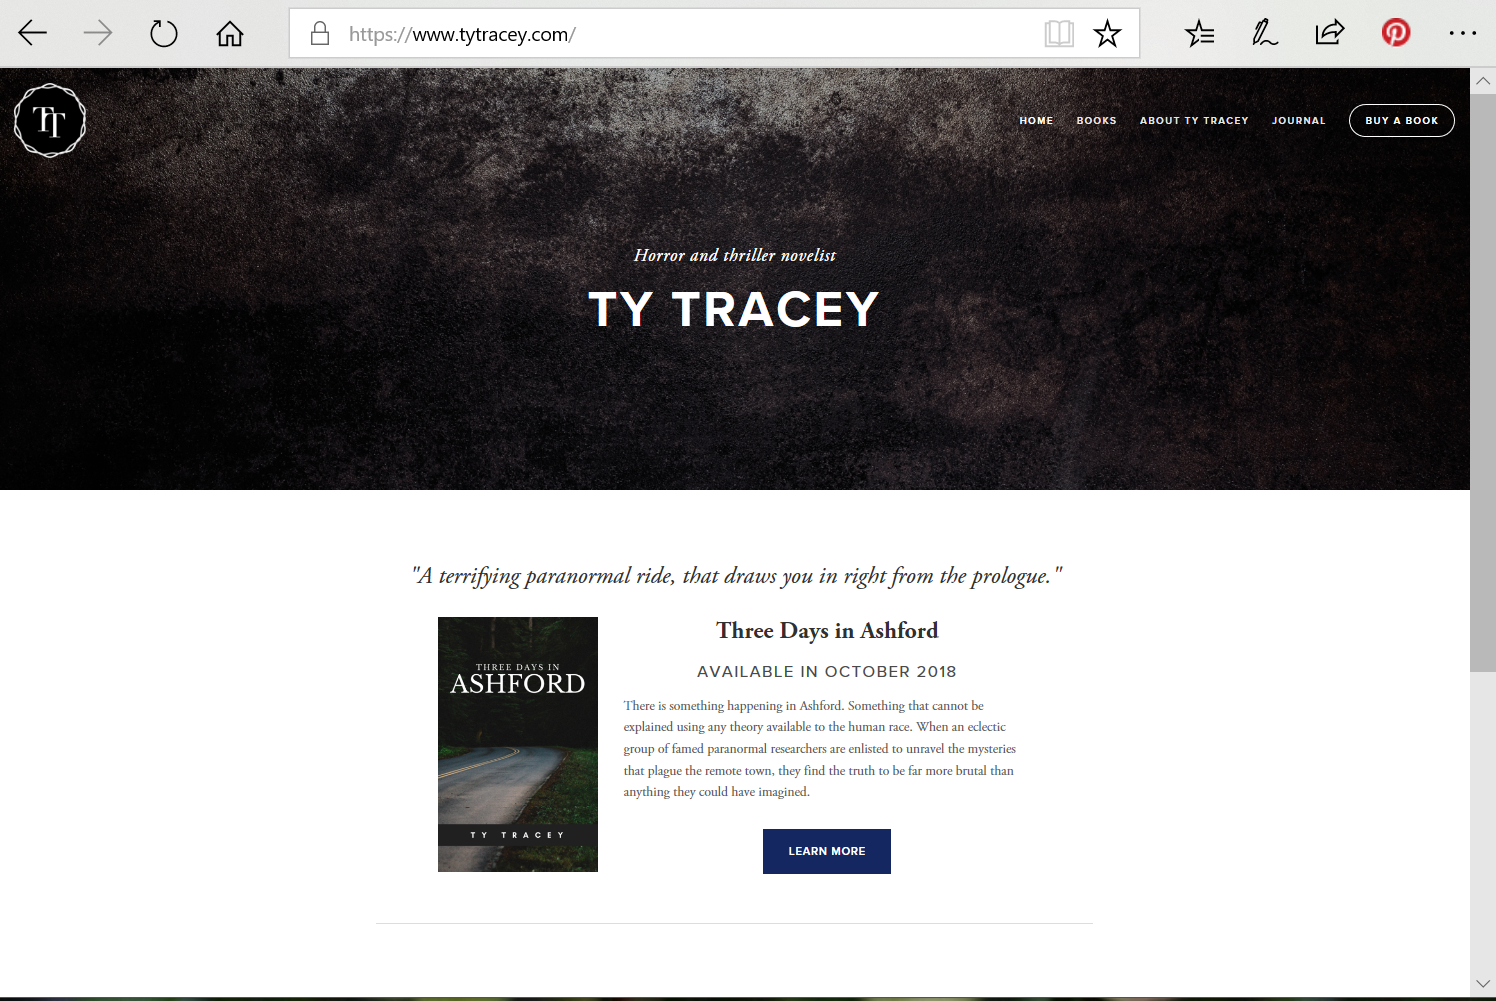 Ty Tracey - Author |  www.tytracey.com